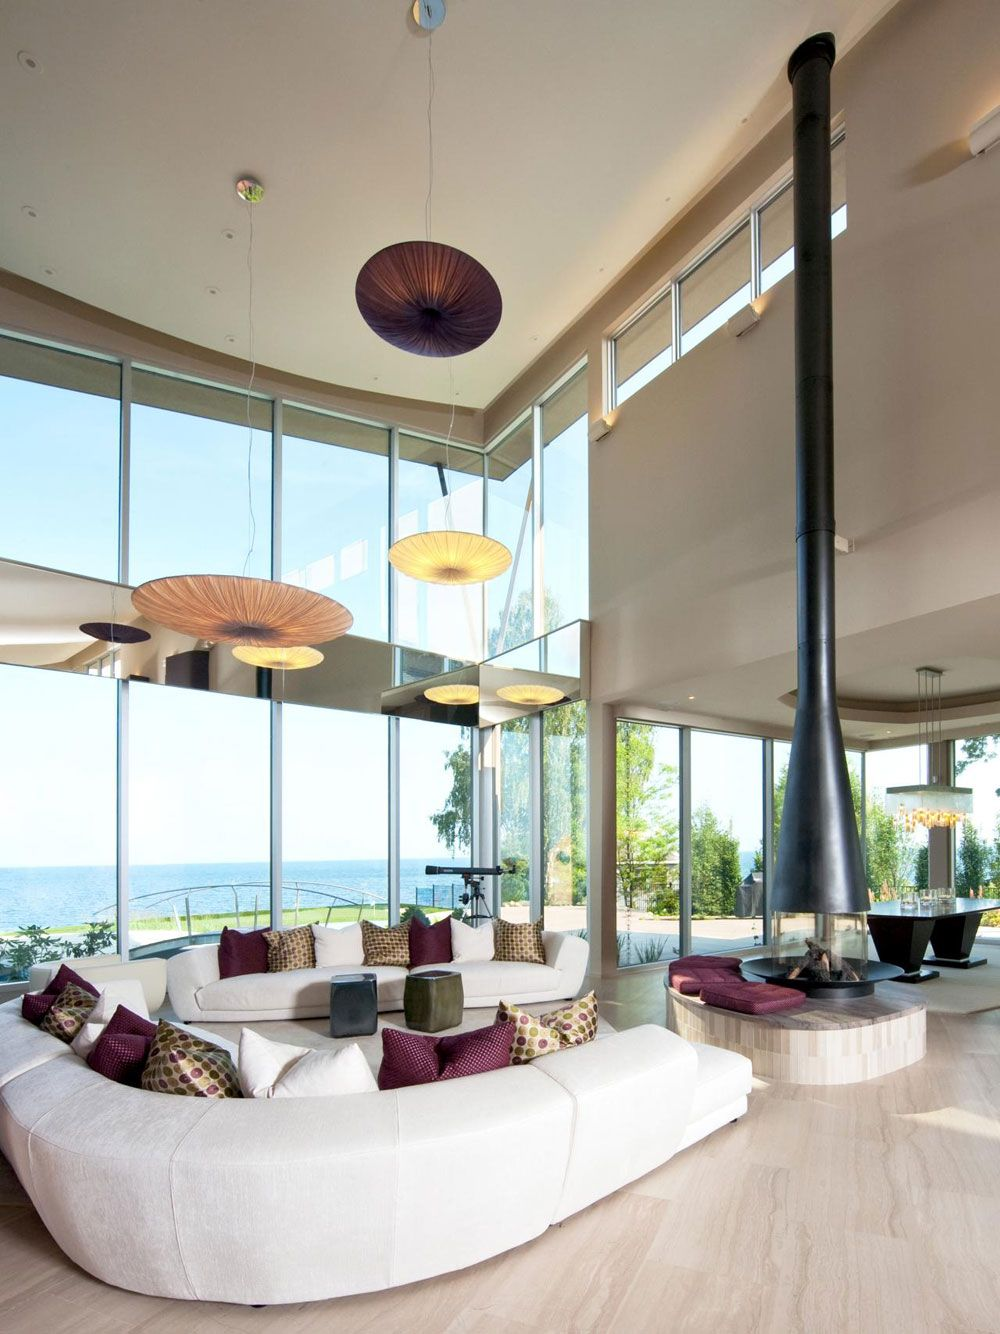 Best Living Room Centerpiece Ideas | Living rooms, Room and Interiors